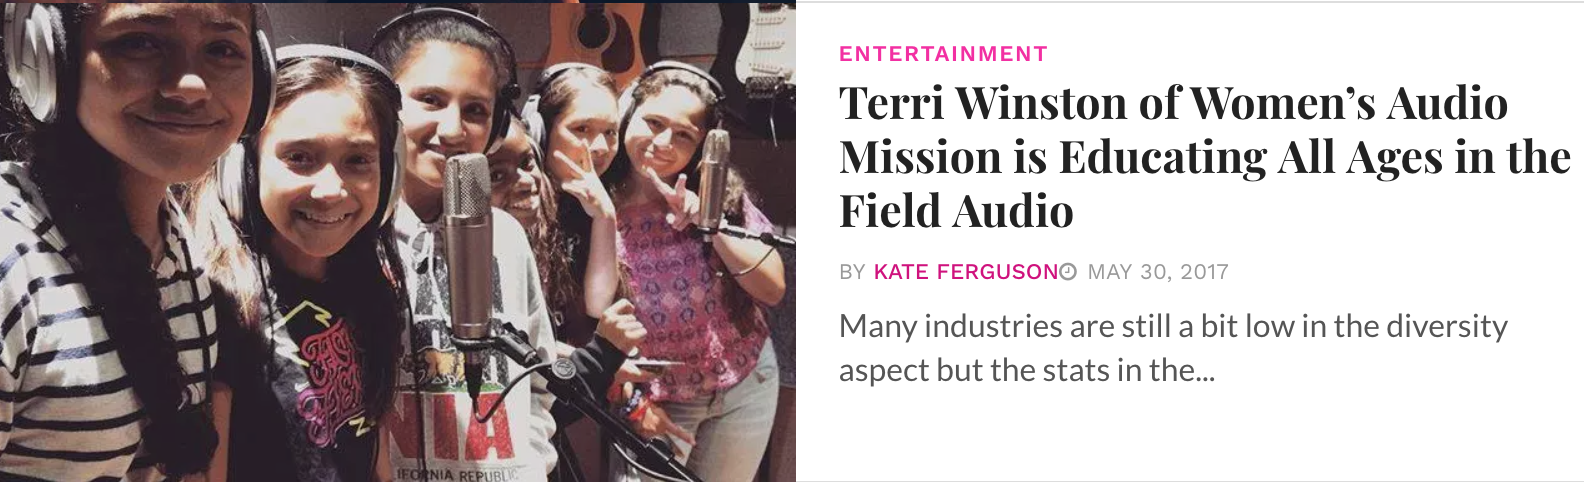 """- """"Terri Winston of Women's Audio Mission is Educating All Ages in the Field Audio""""Published on Inspirer"""